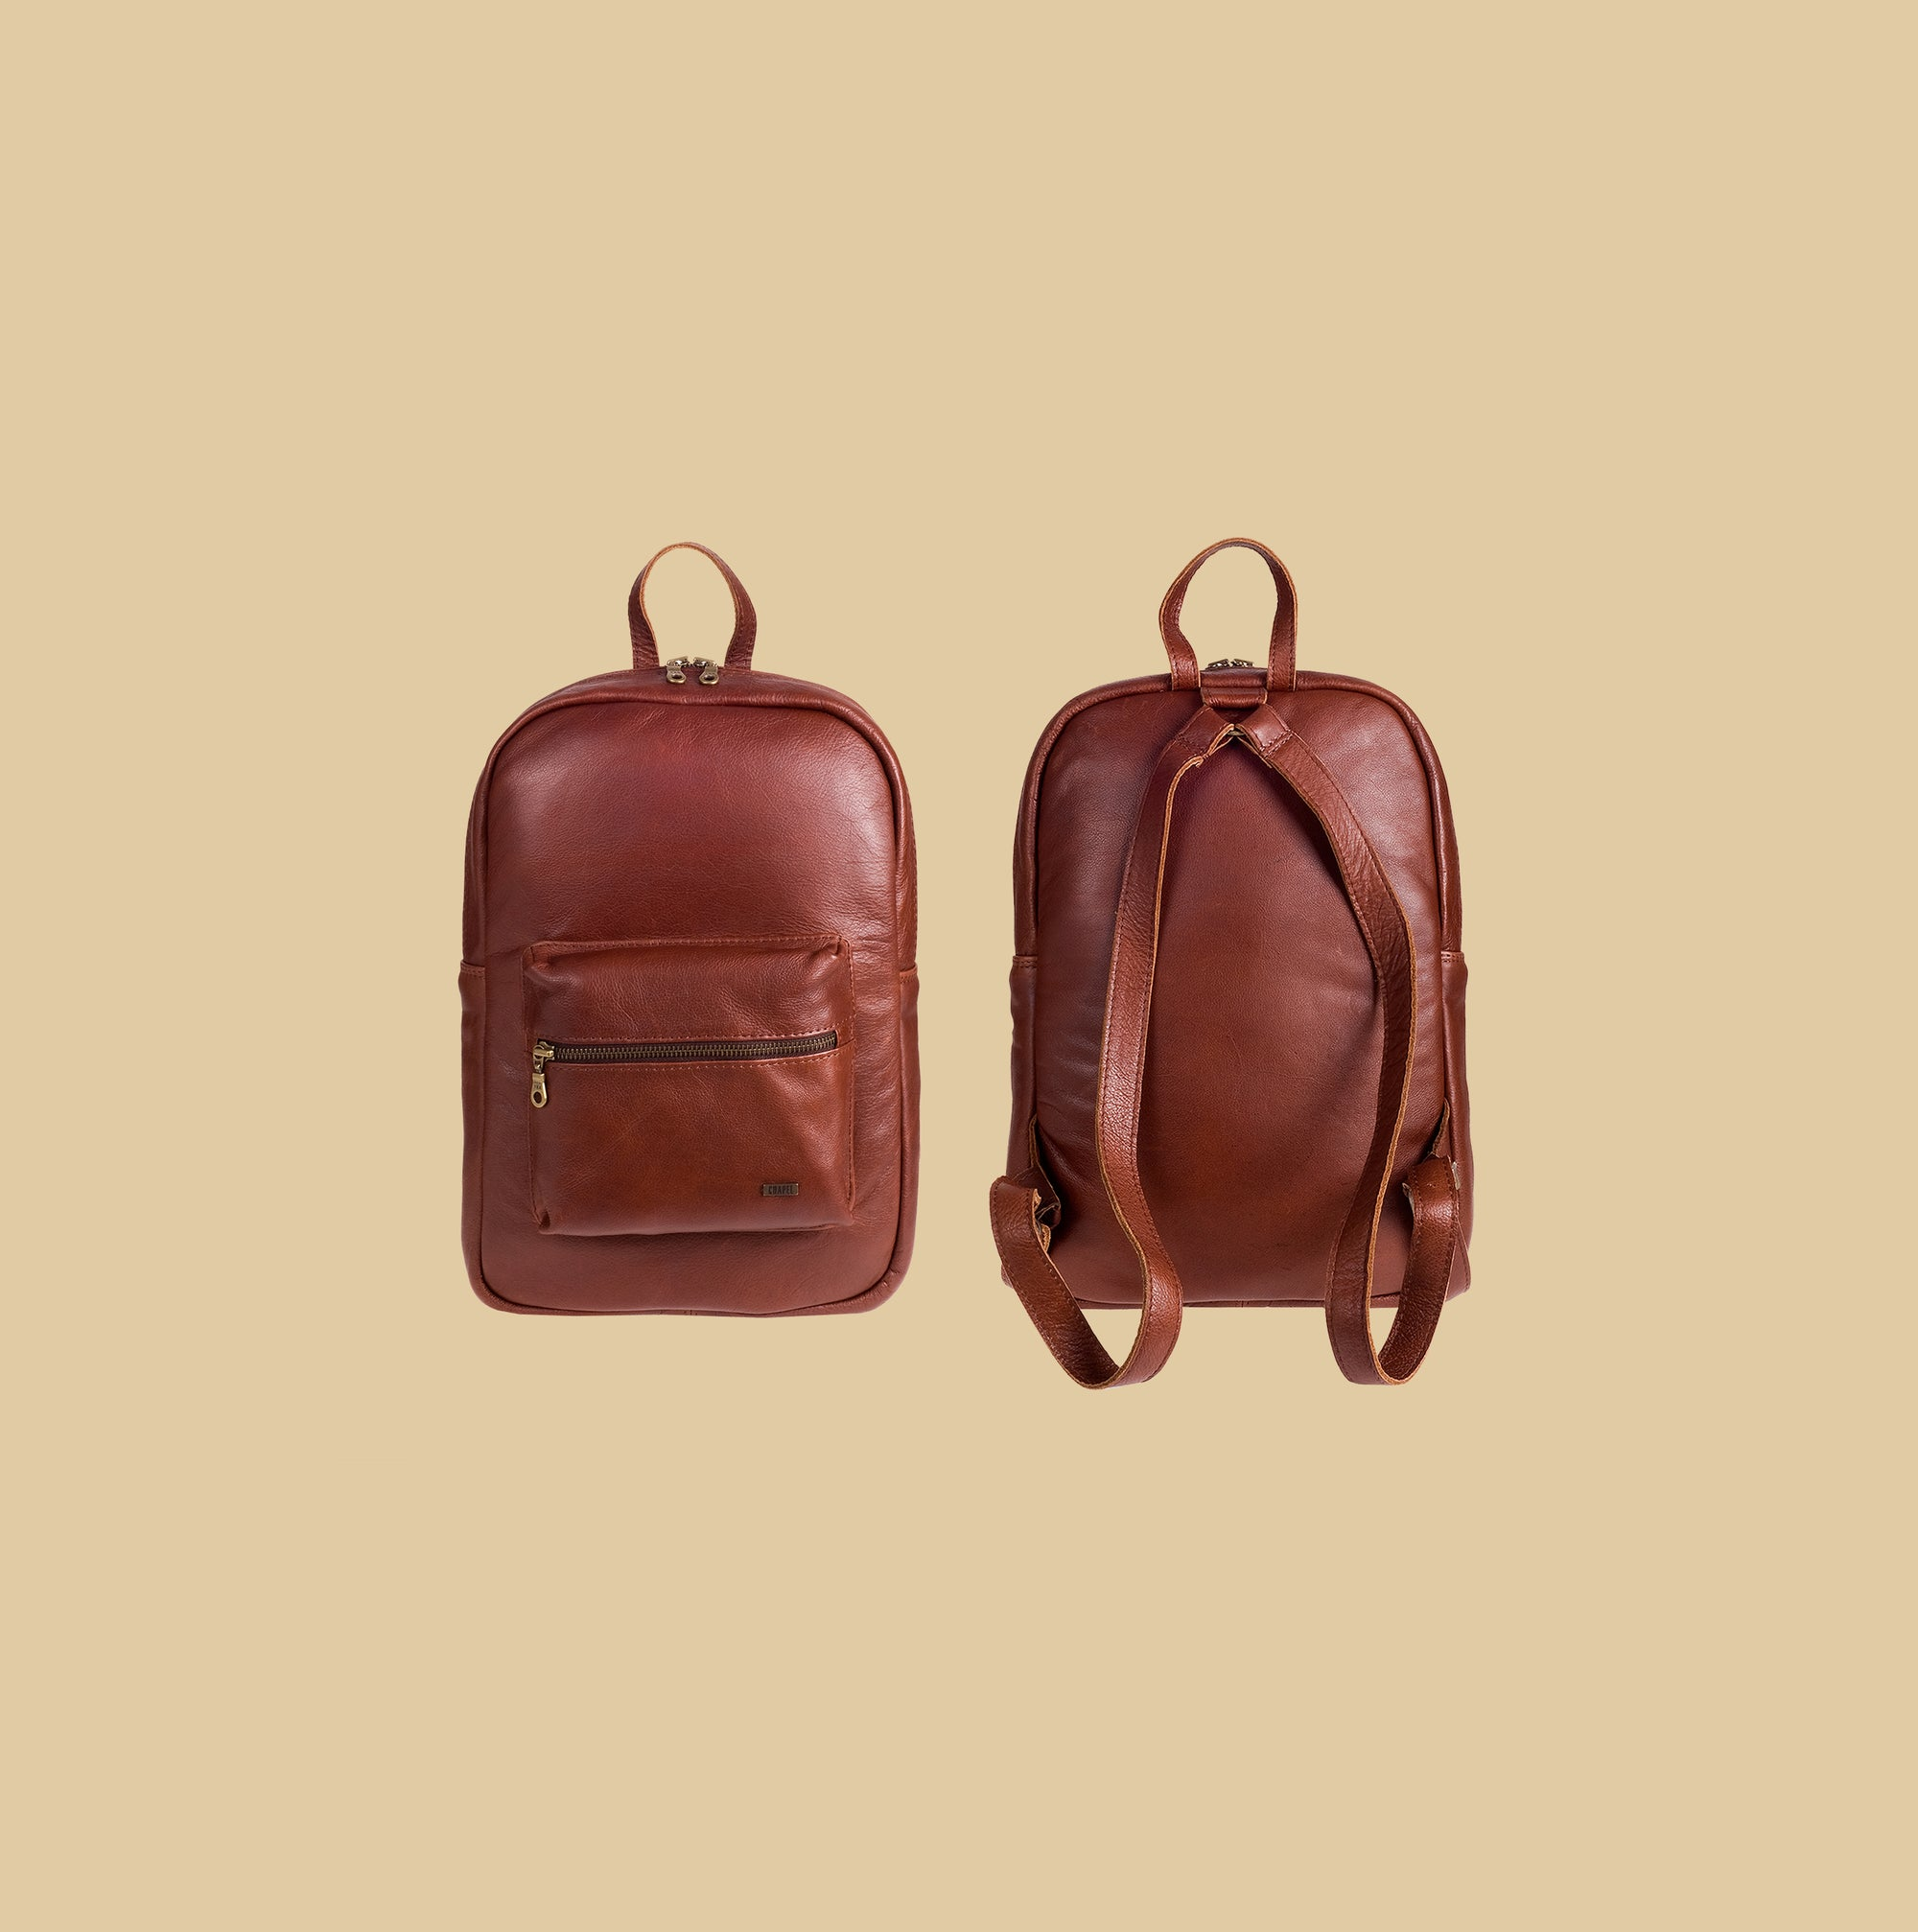 "Leather Genuine Mini Backpack 13"" laptop"